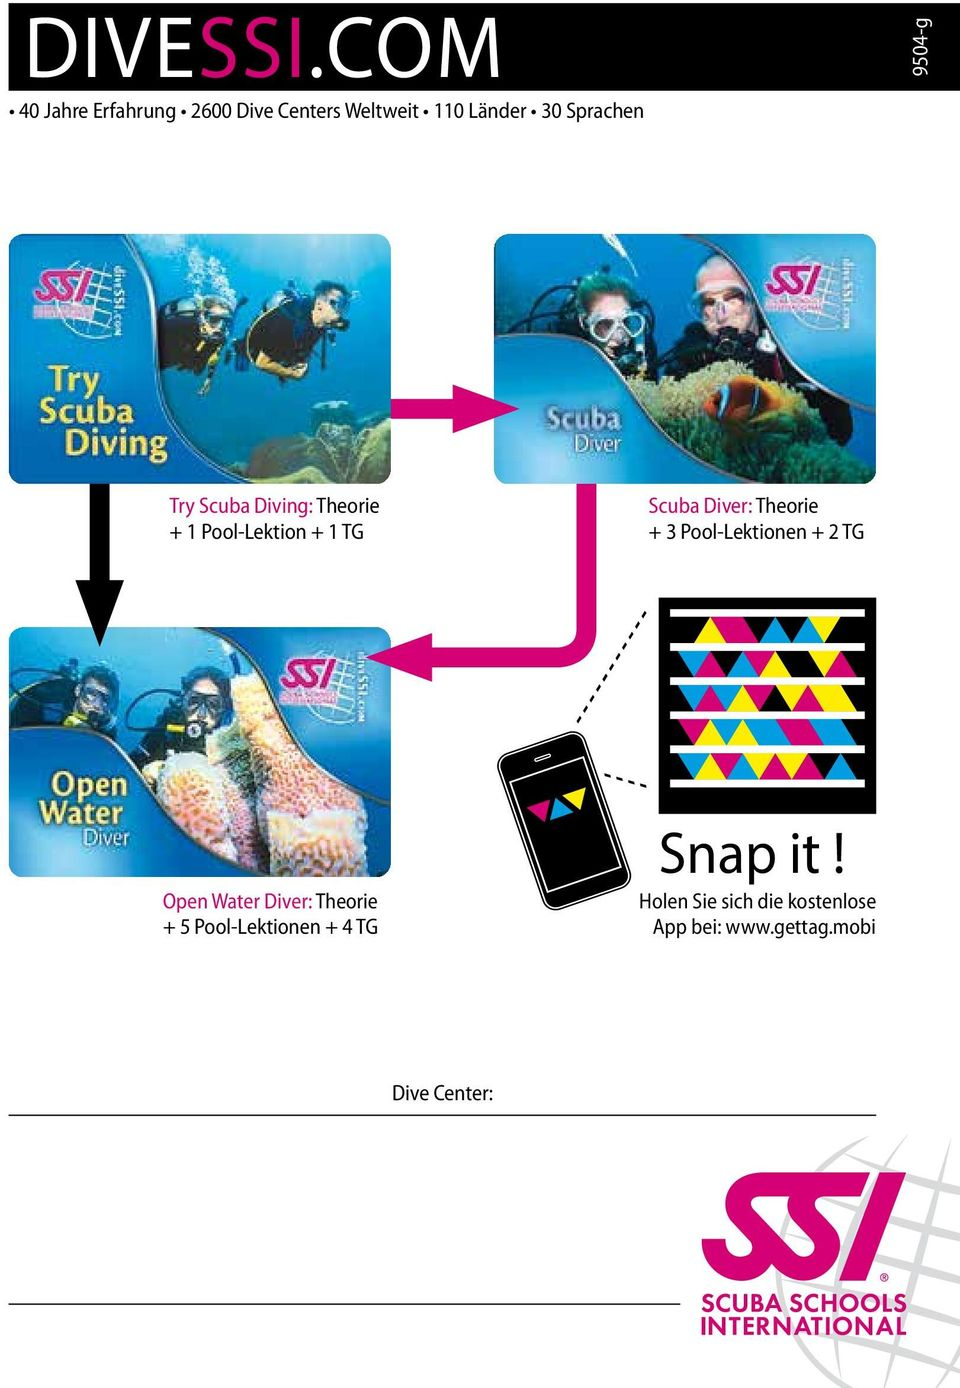 9504-g Try Scuba Diving: Theorie + 1 Pool-Lektion + 1 TG Scuba Diver: Theorie